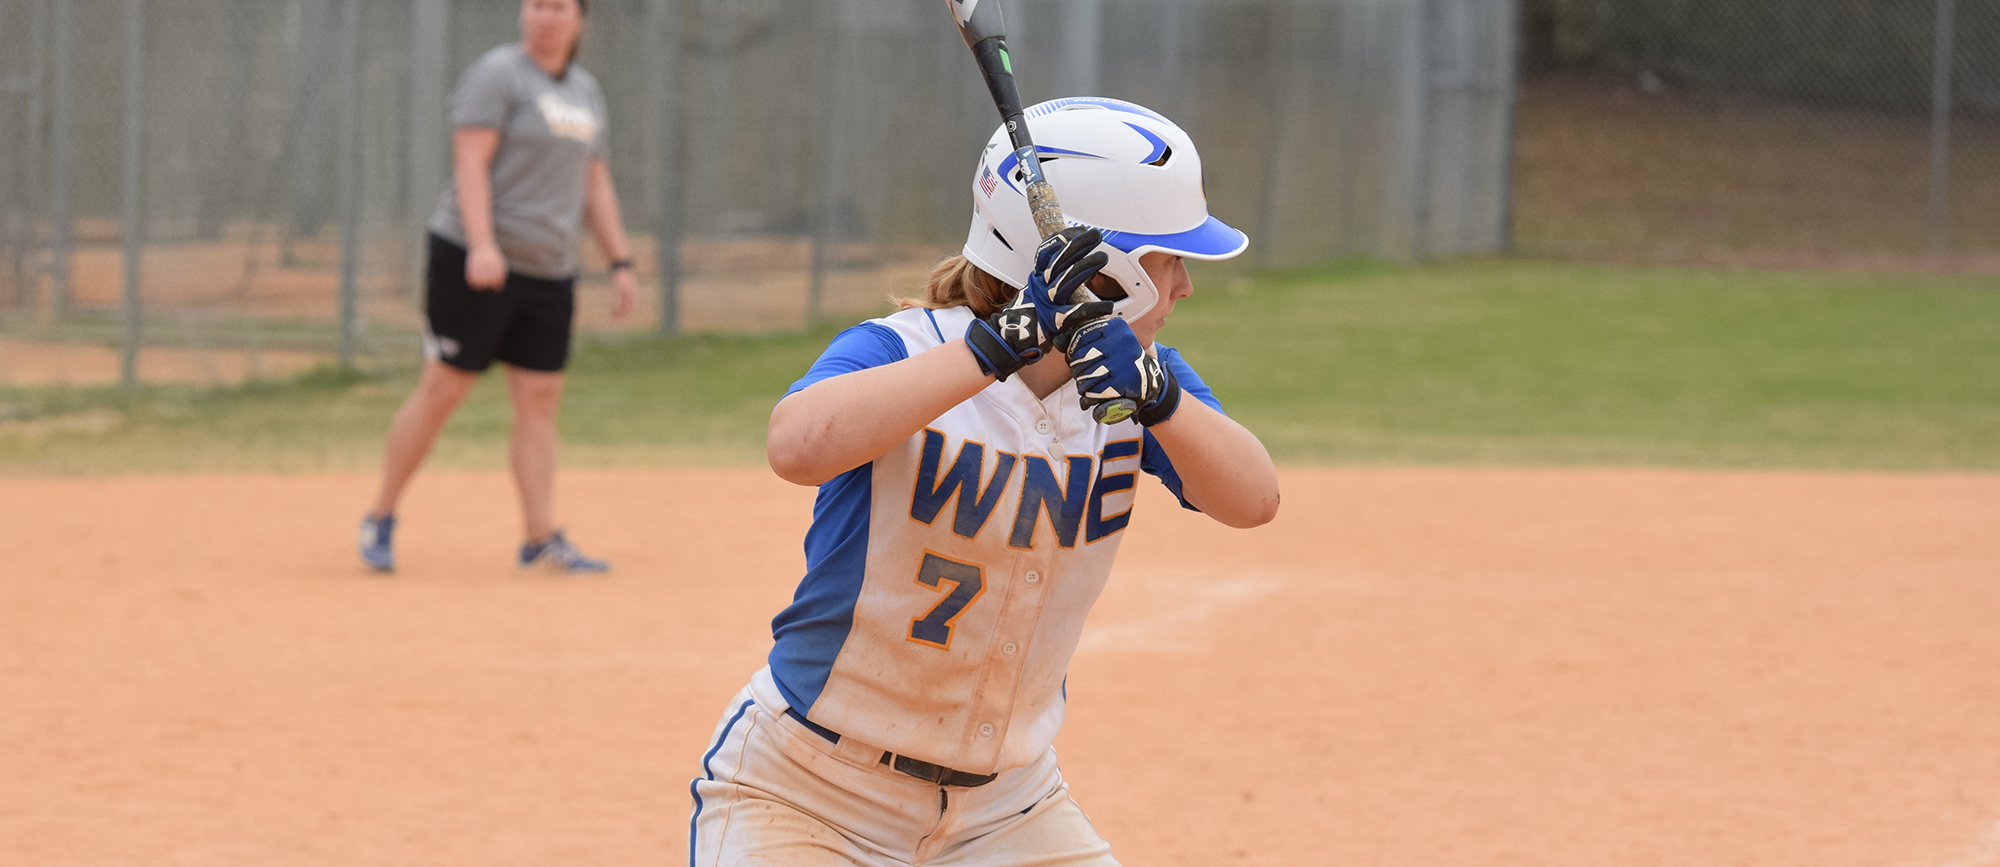 Western New England Picks Up Two CCC Wins at Endicott